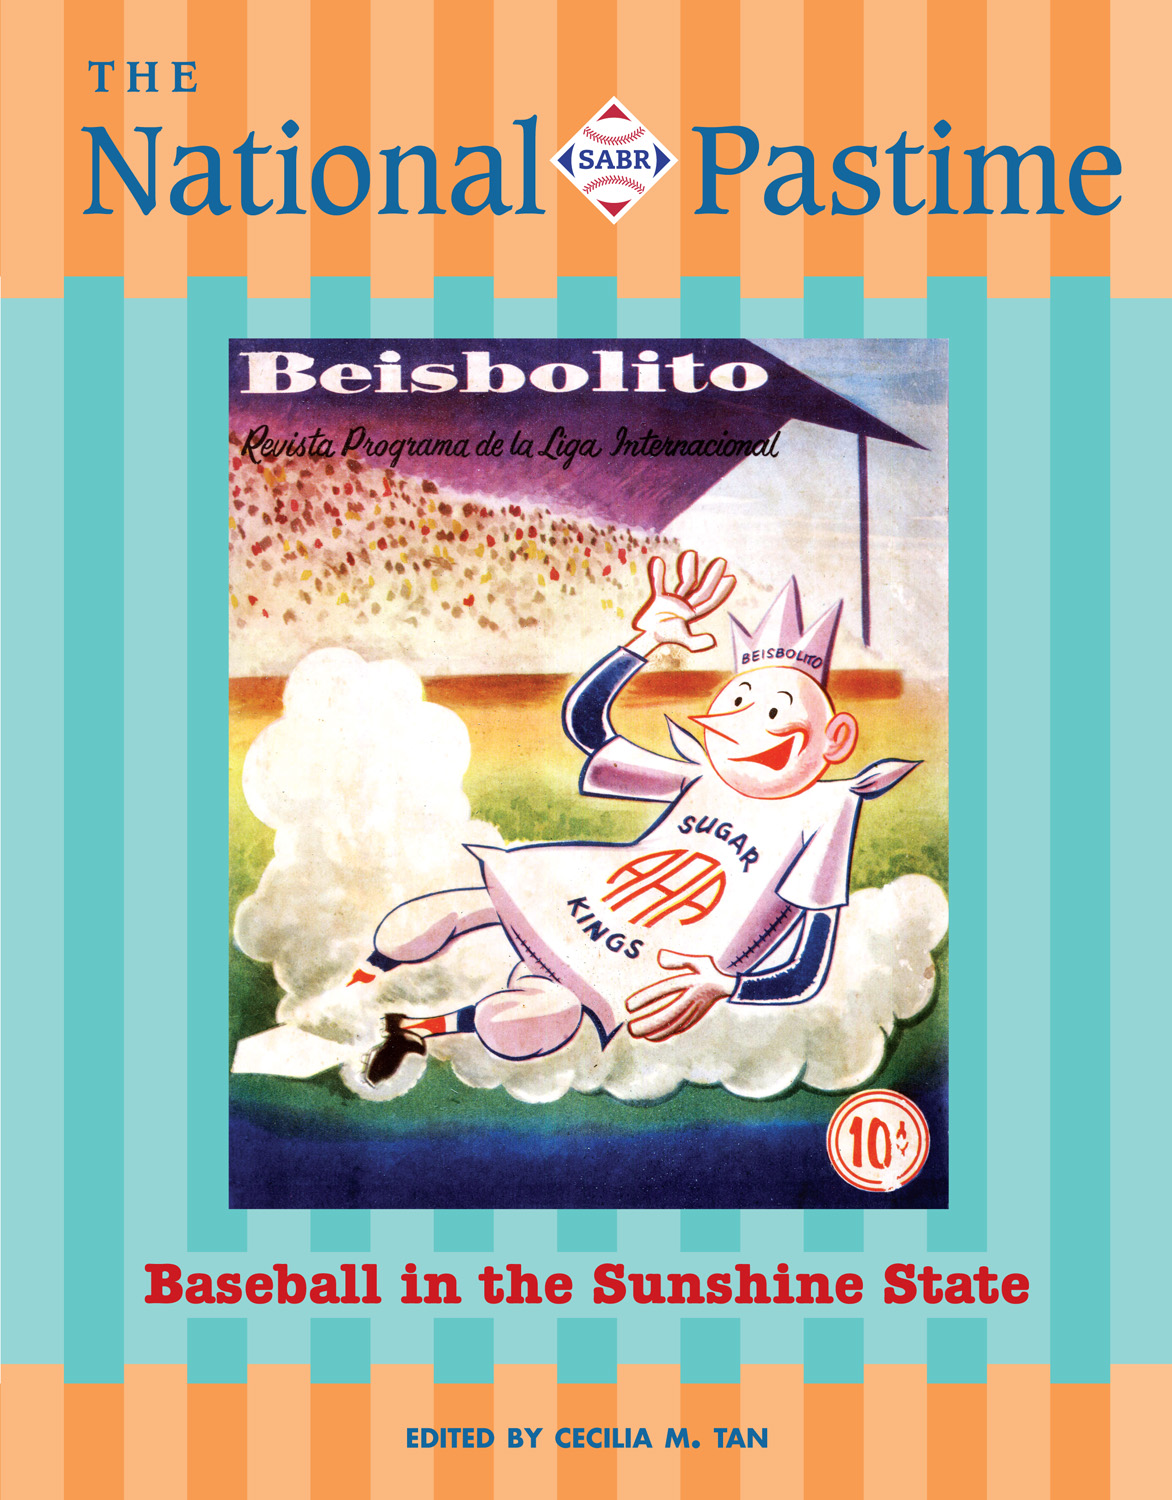 The National Pastime: Baseball in the Sunshine State